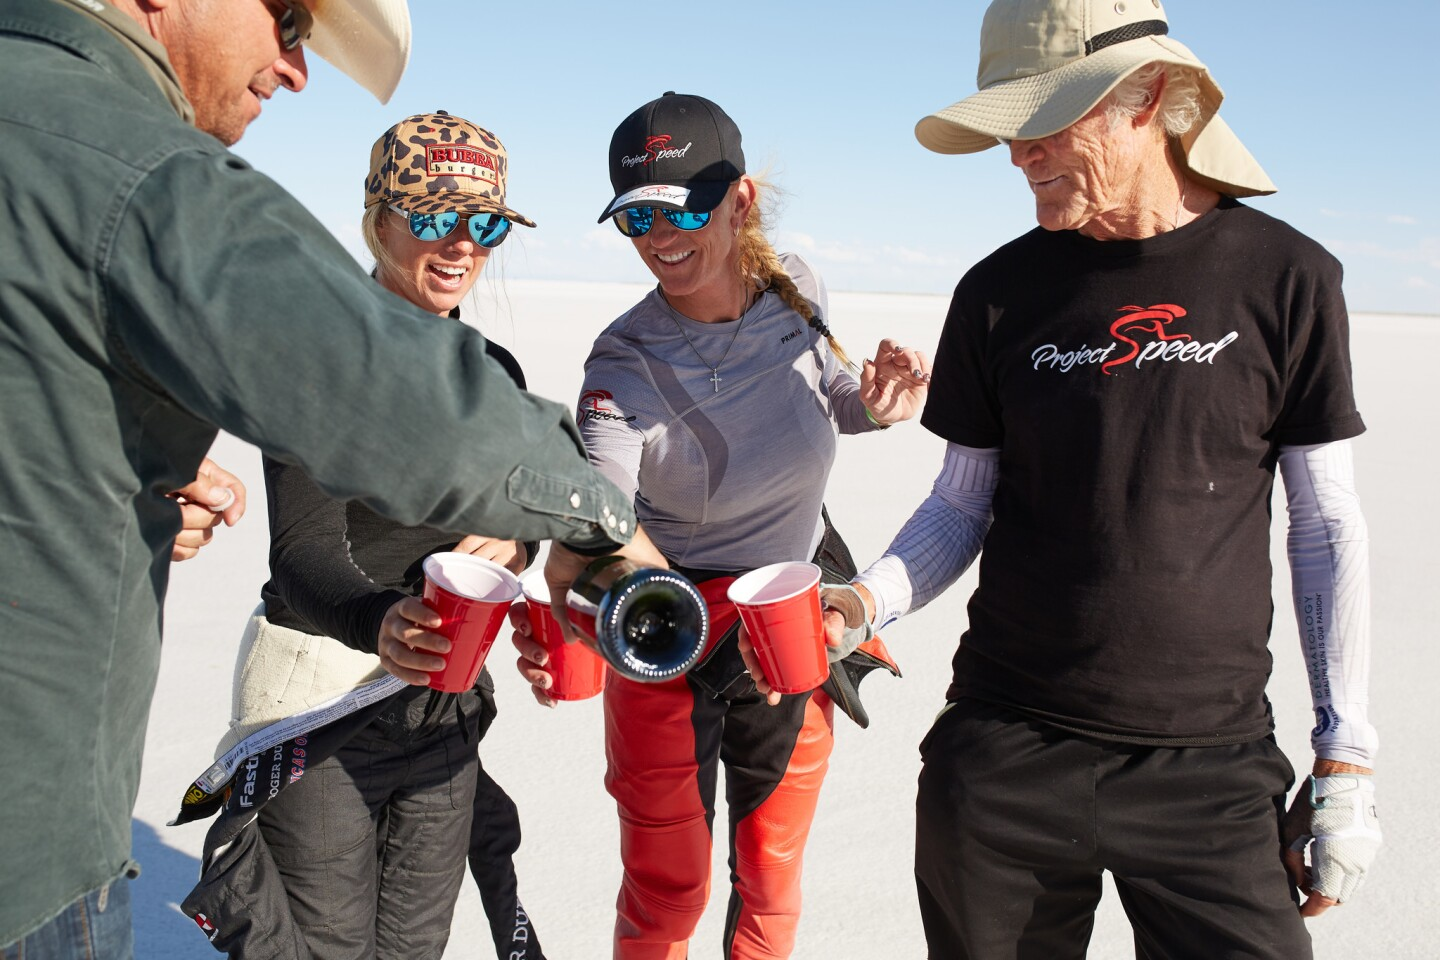 Denise Mueller-Korenek, second from right, celebrates with champagne her record-breaking ride to set the paced bicycle speed record of 183.9 mph on Sunday in Utah. She's pictured with her husband Chris Korenek, left, pace car driver Shea Holbrook, second from left, and cycling coach John Howard, right.